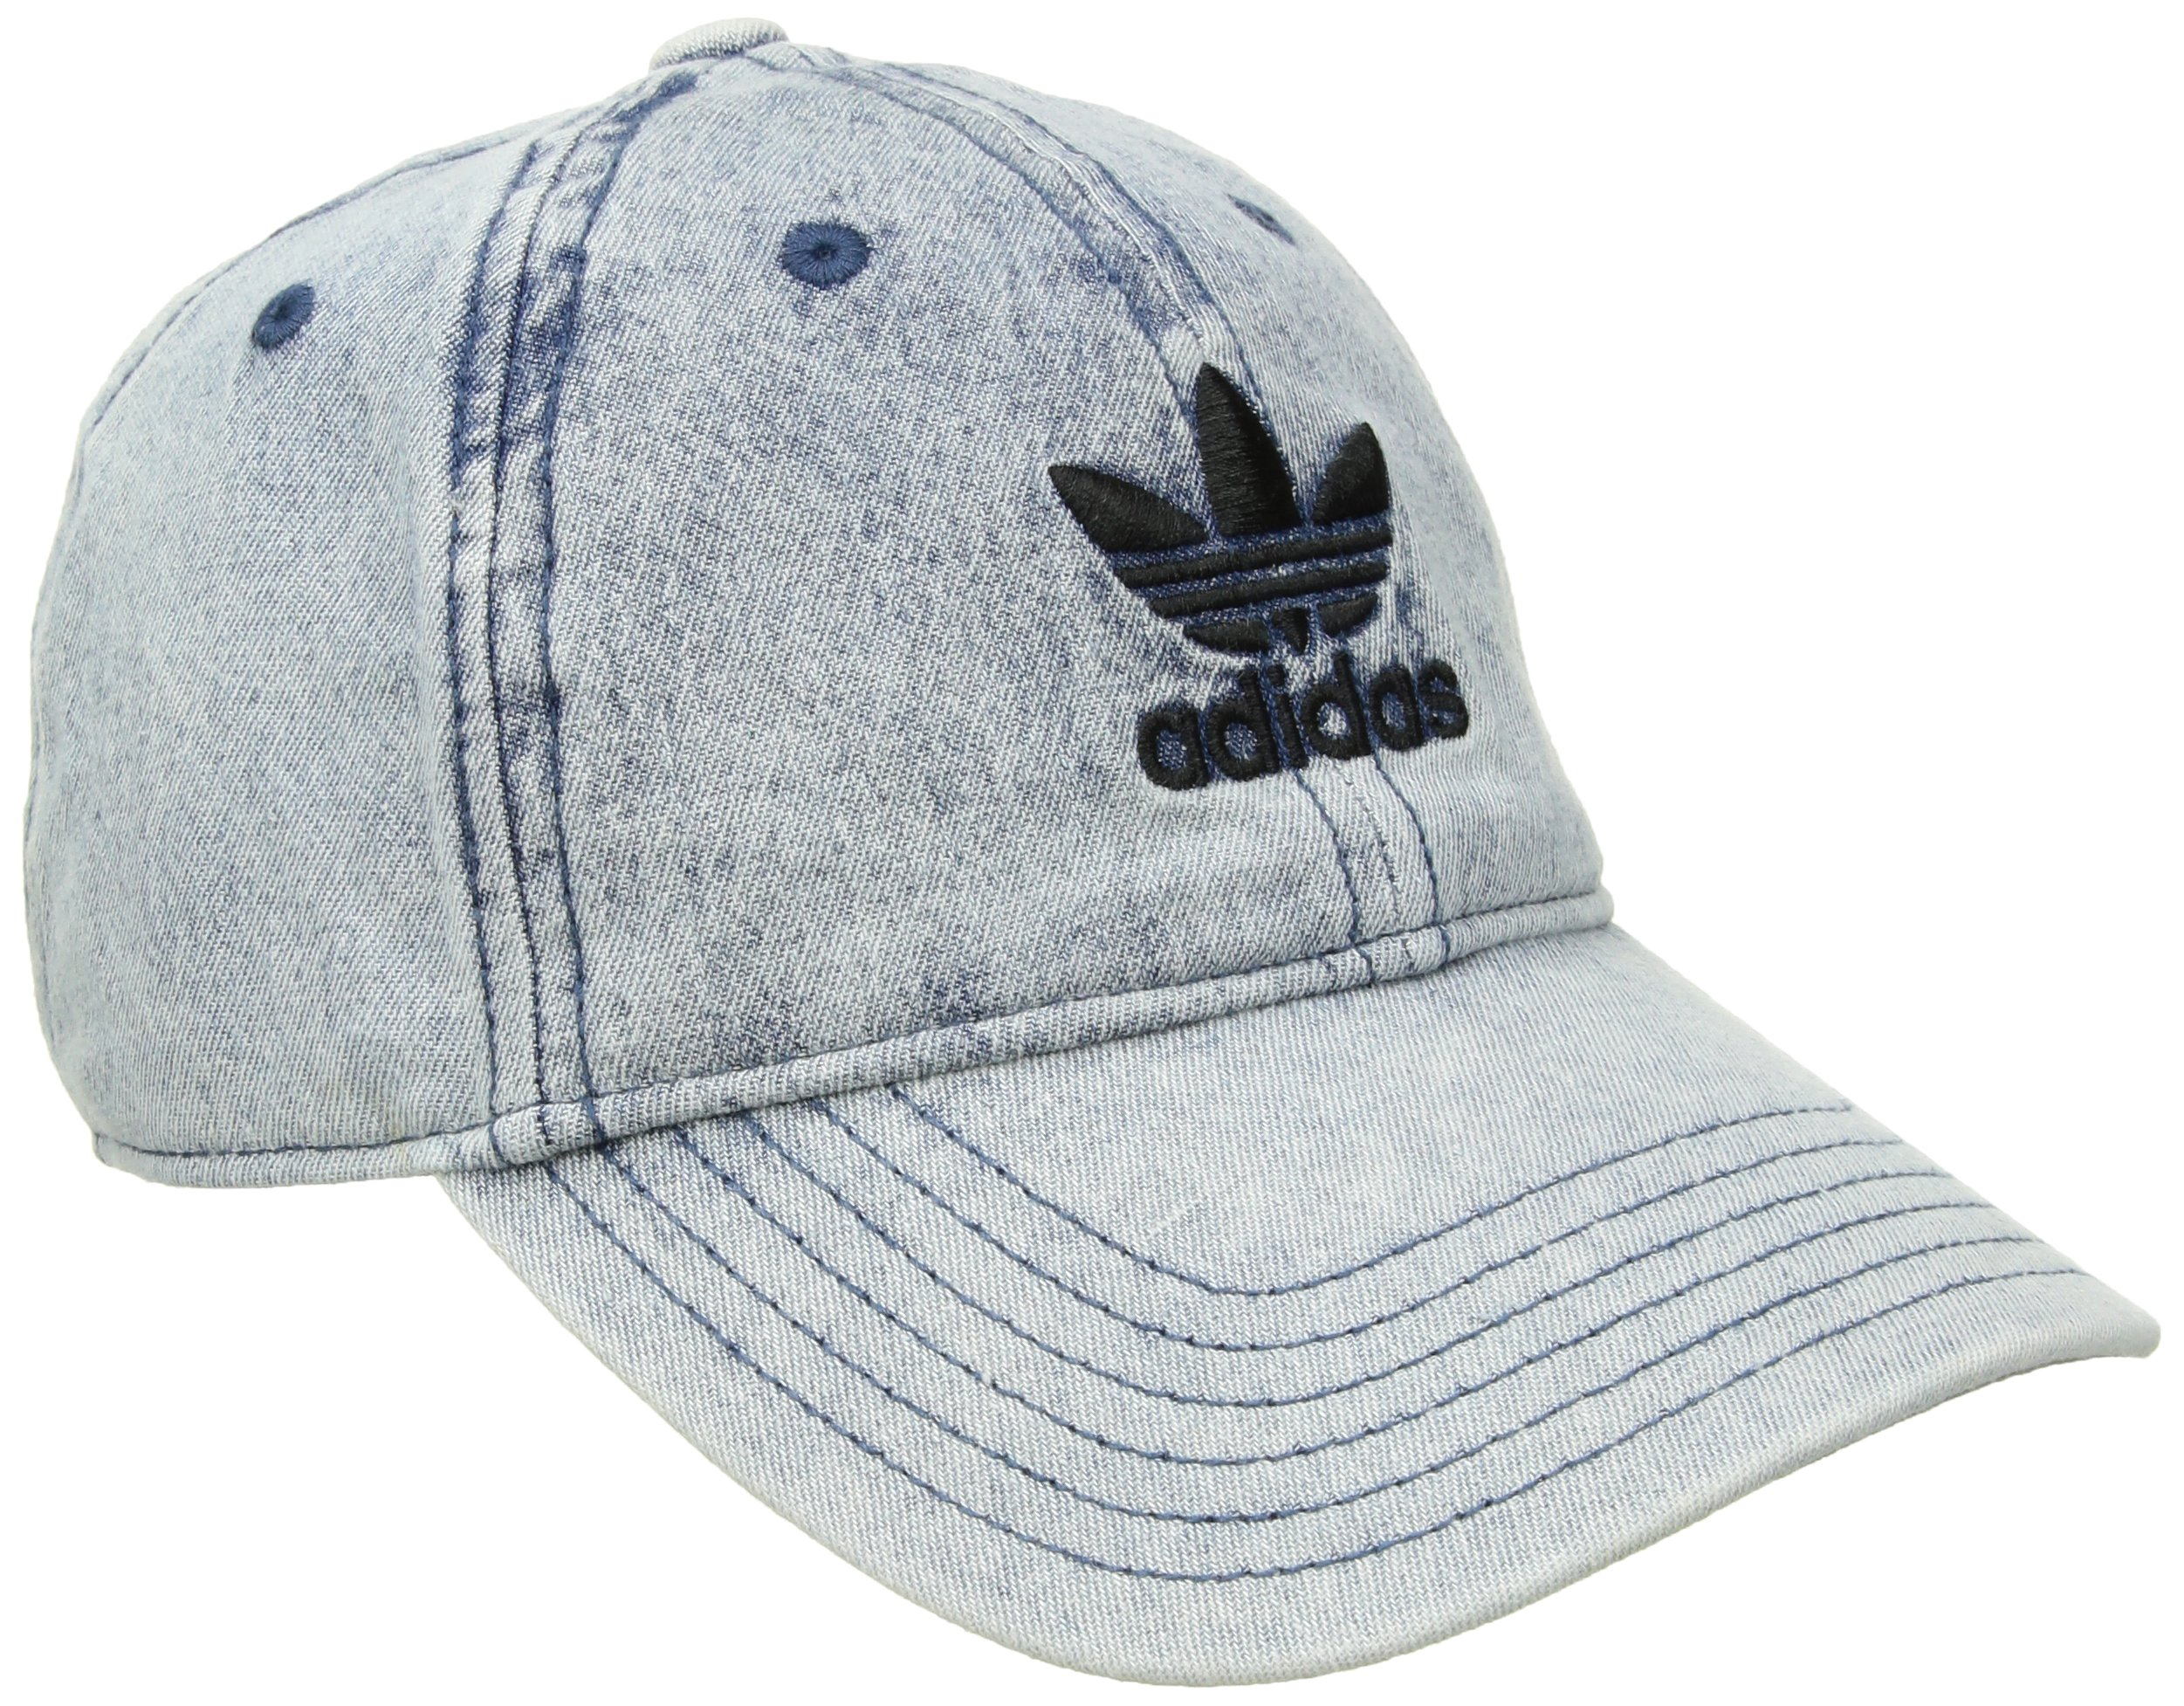 adidas Women's Originals Relaxed Fit Strapback Cap, Washed Blue Denim, One Size